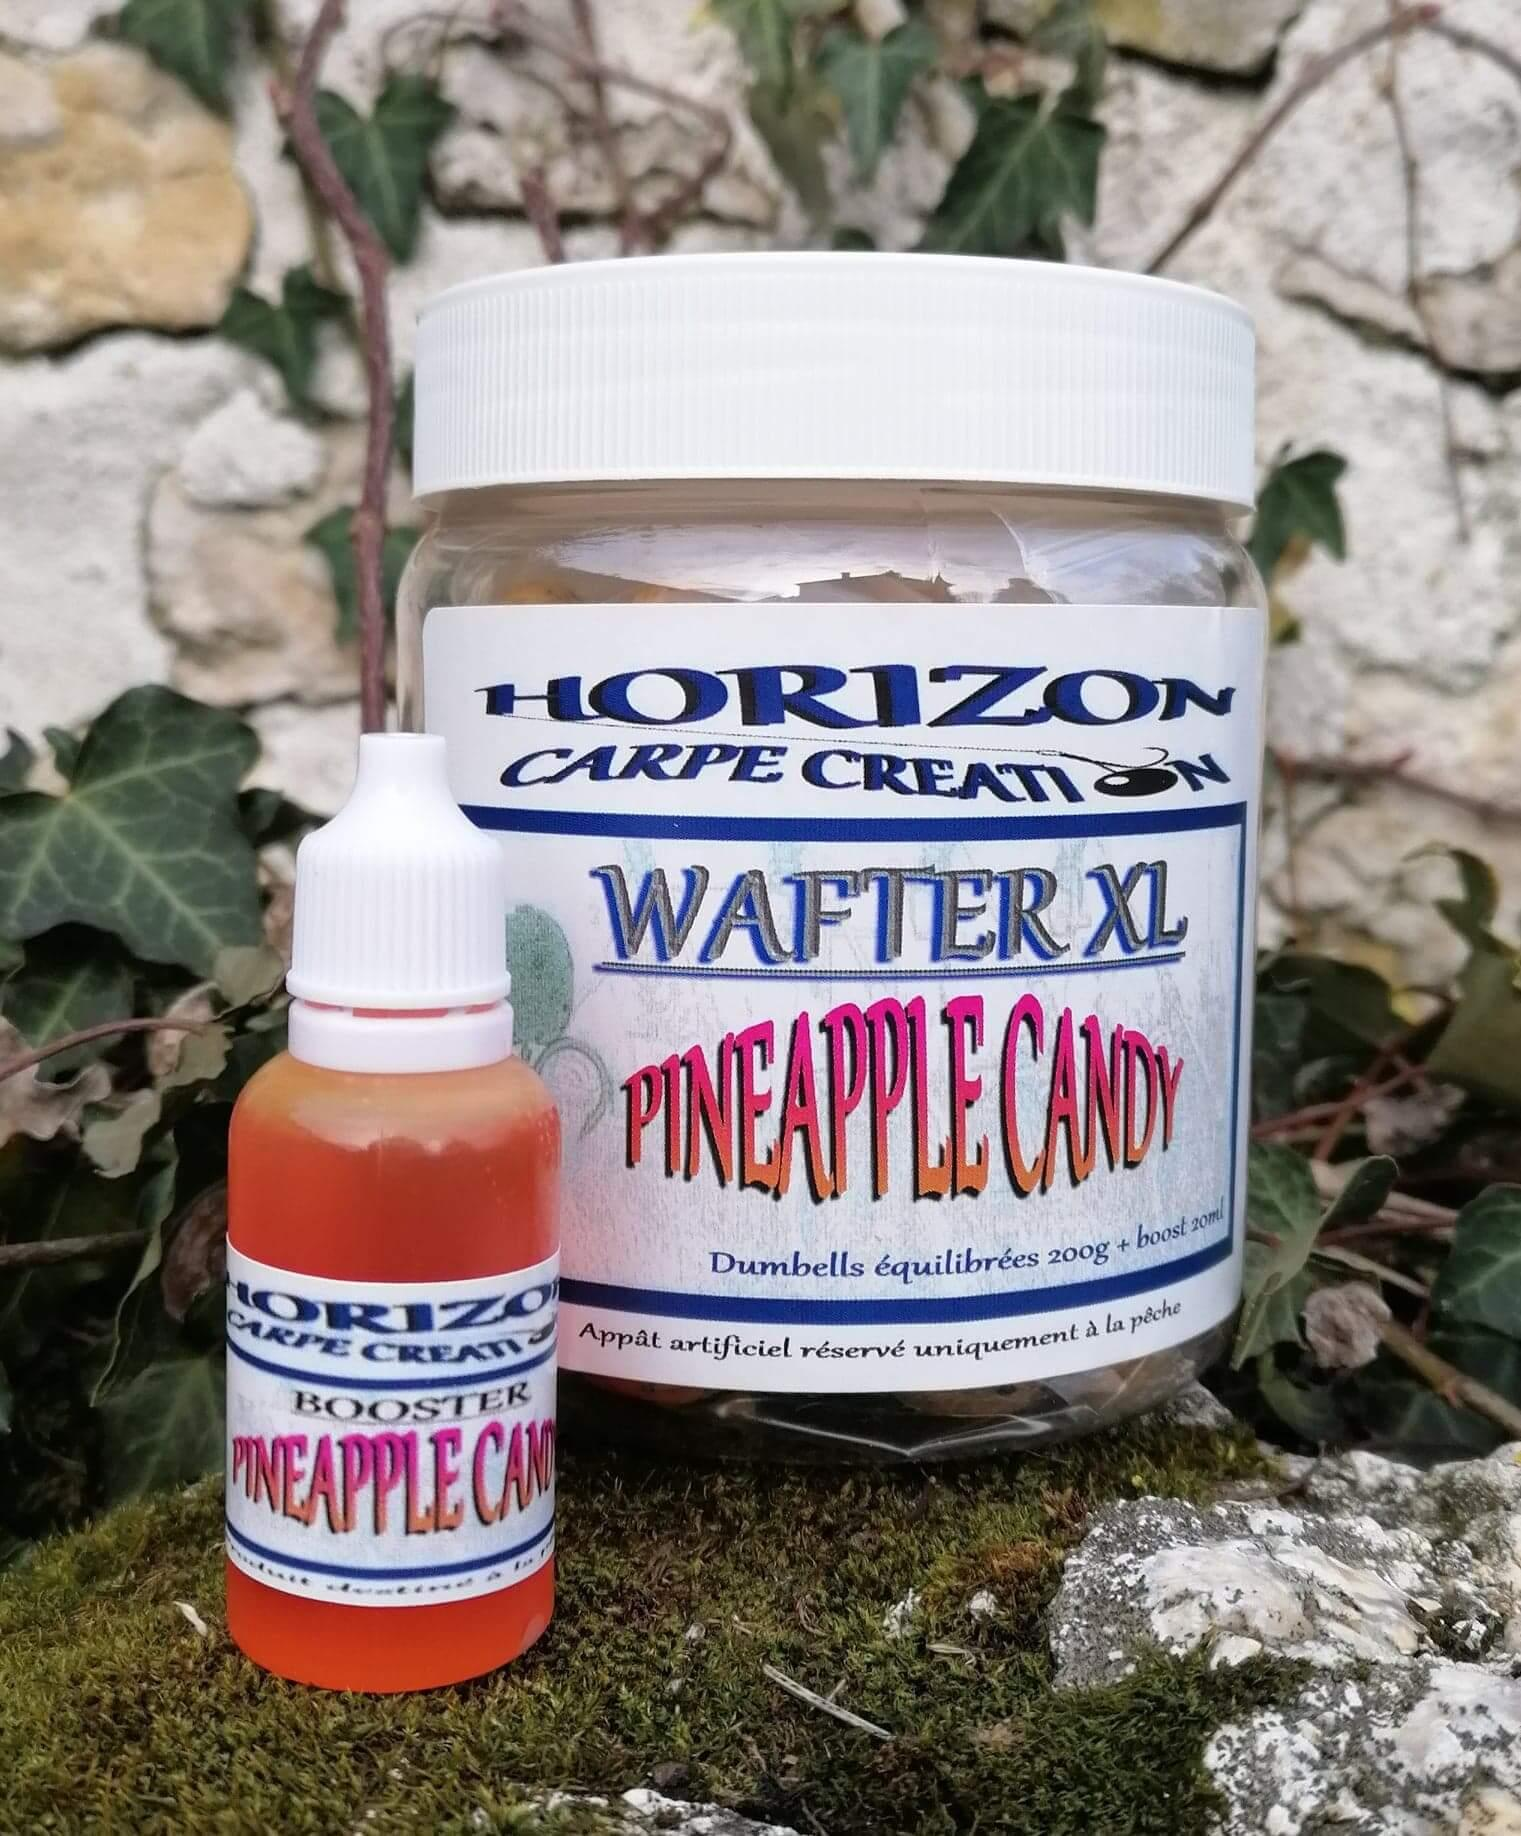 Wafter xl pineapple